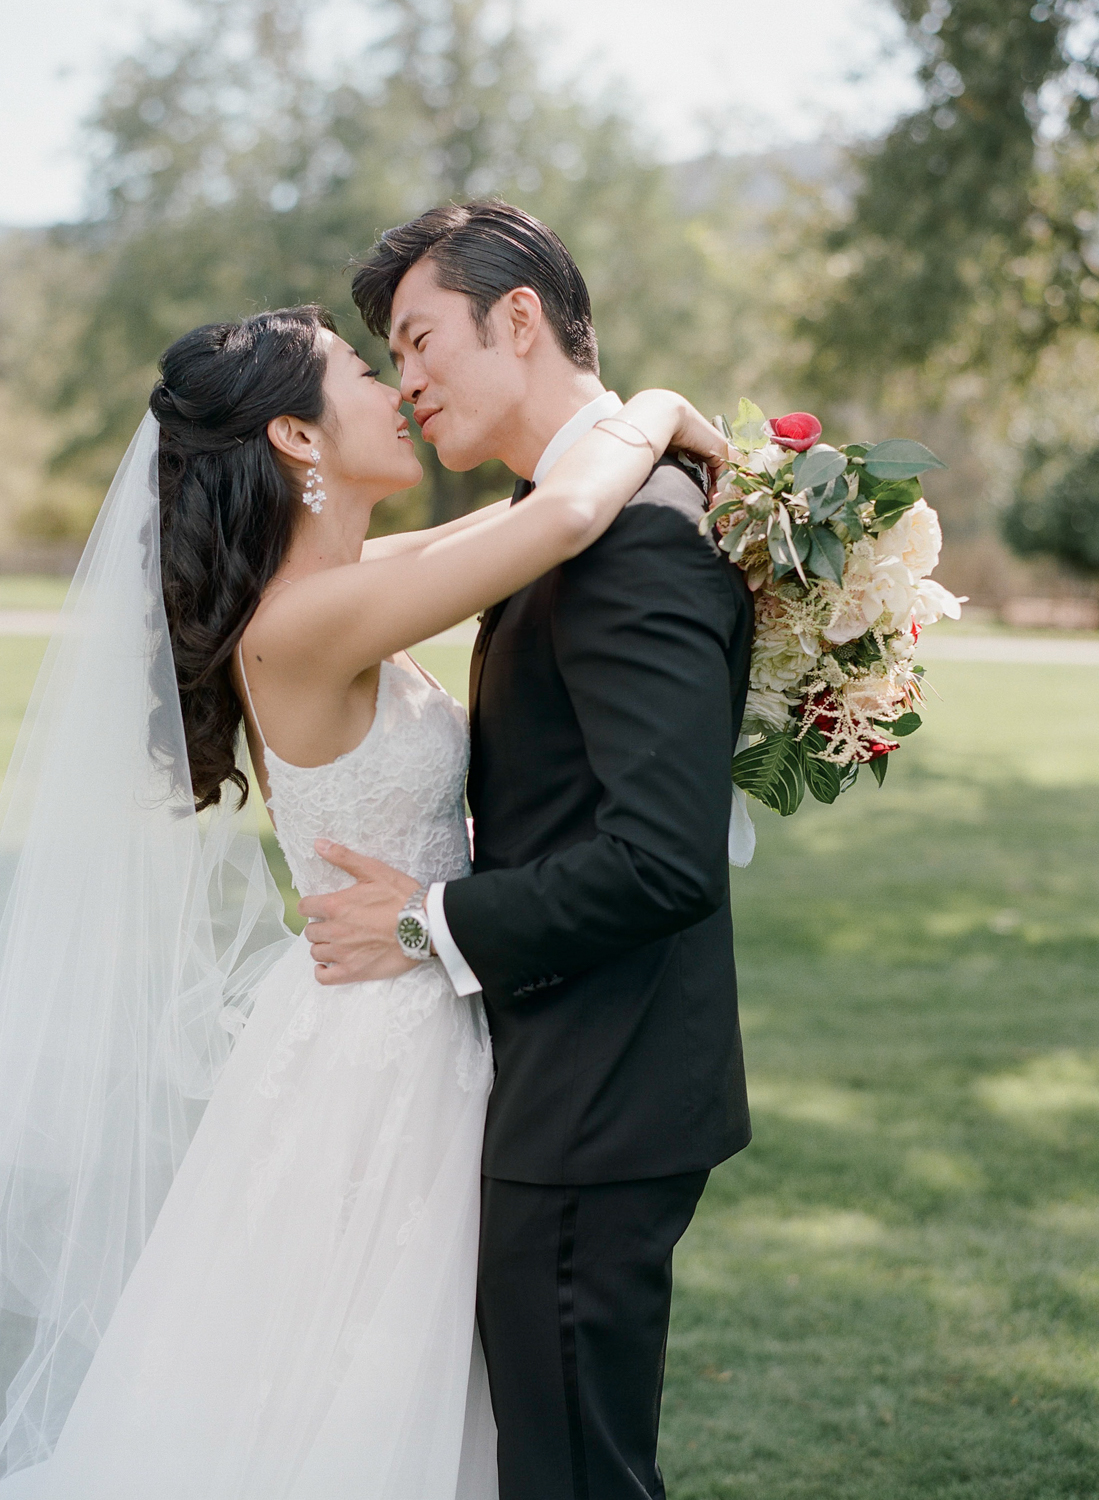 Bride and groom share a romantic moment before their wedding ceremony in Carmel, California; Sylvie Gil Photography